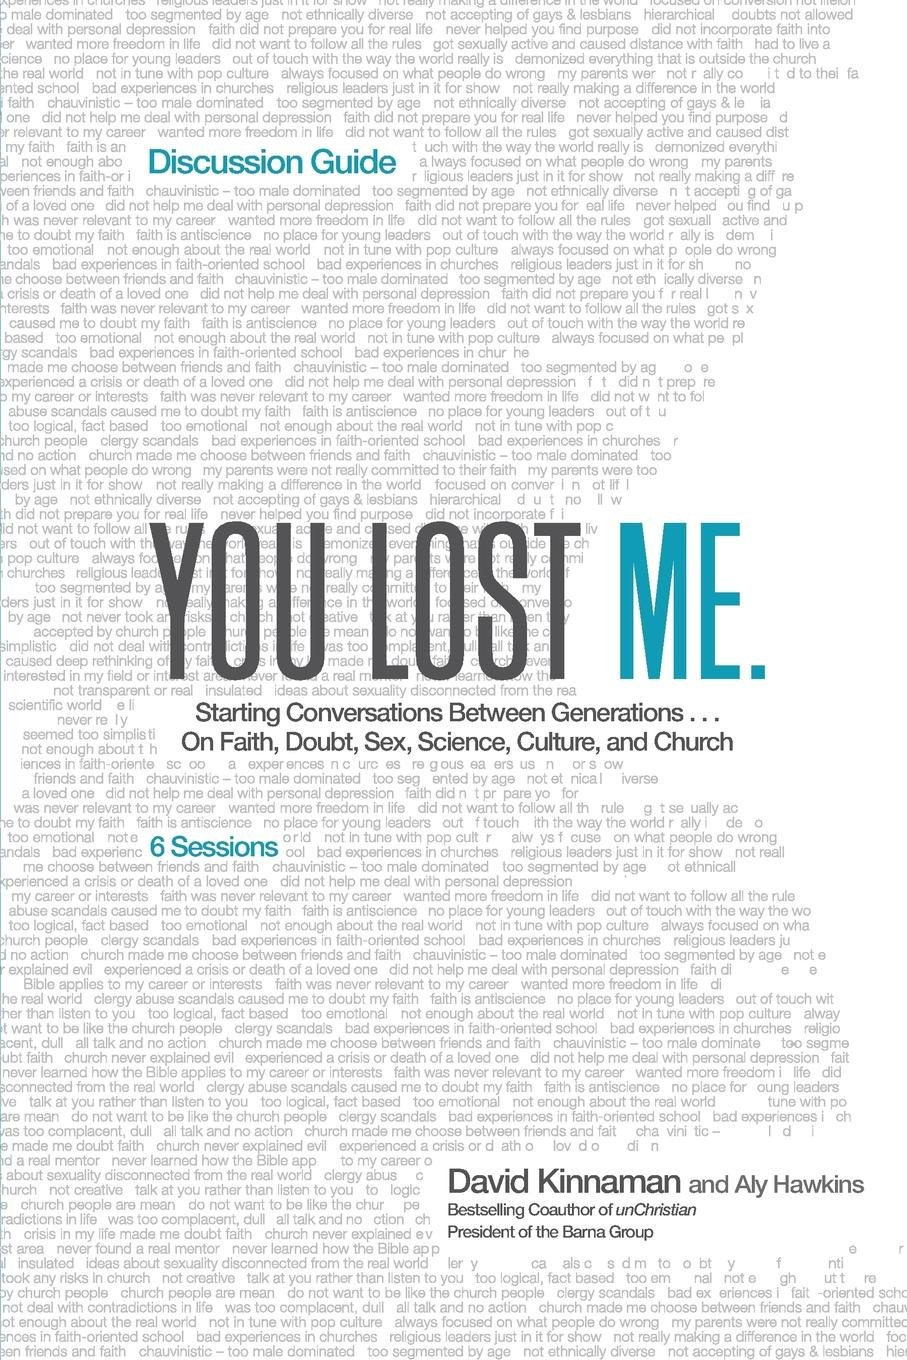 Read Online You Lost Me Discussion Guide: Starting Conversations Between Generations...On Faith, Doubt, Sex, Science, Culture, and Church PDF